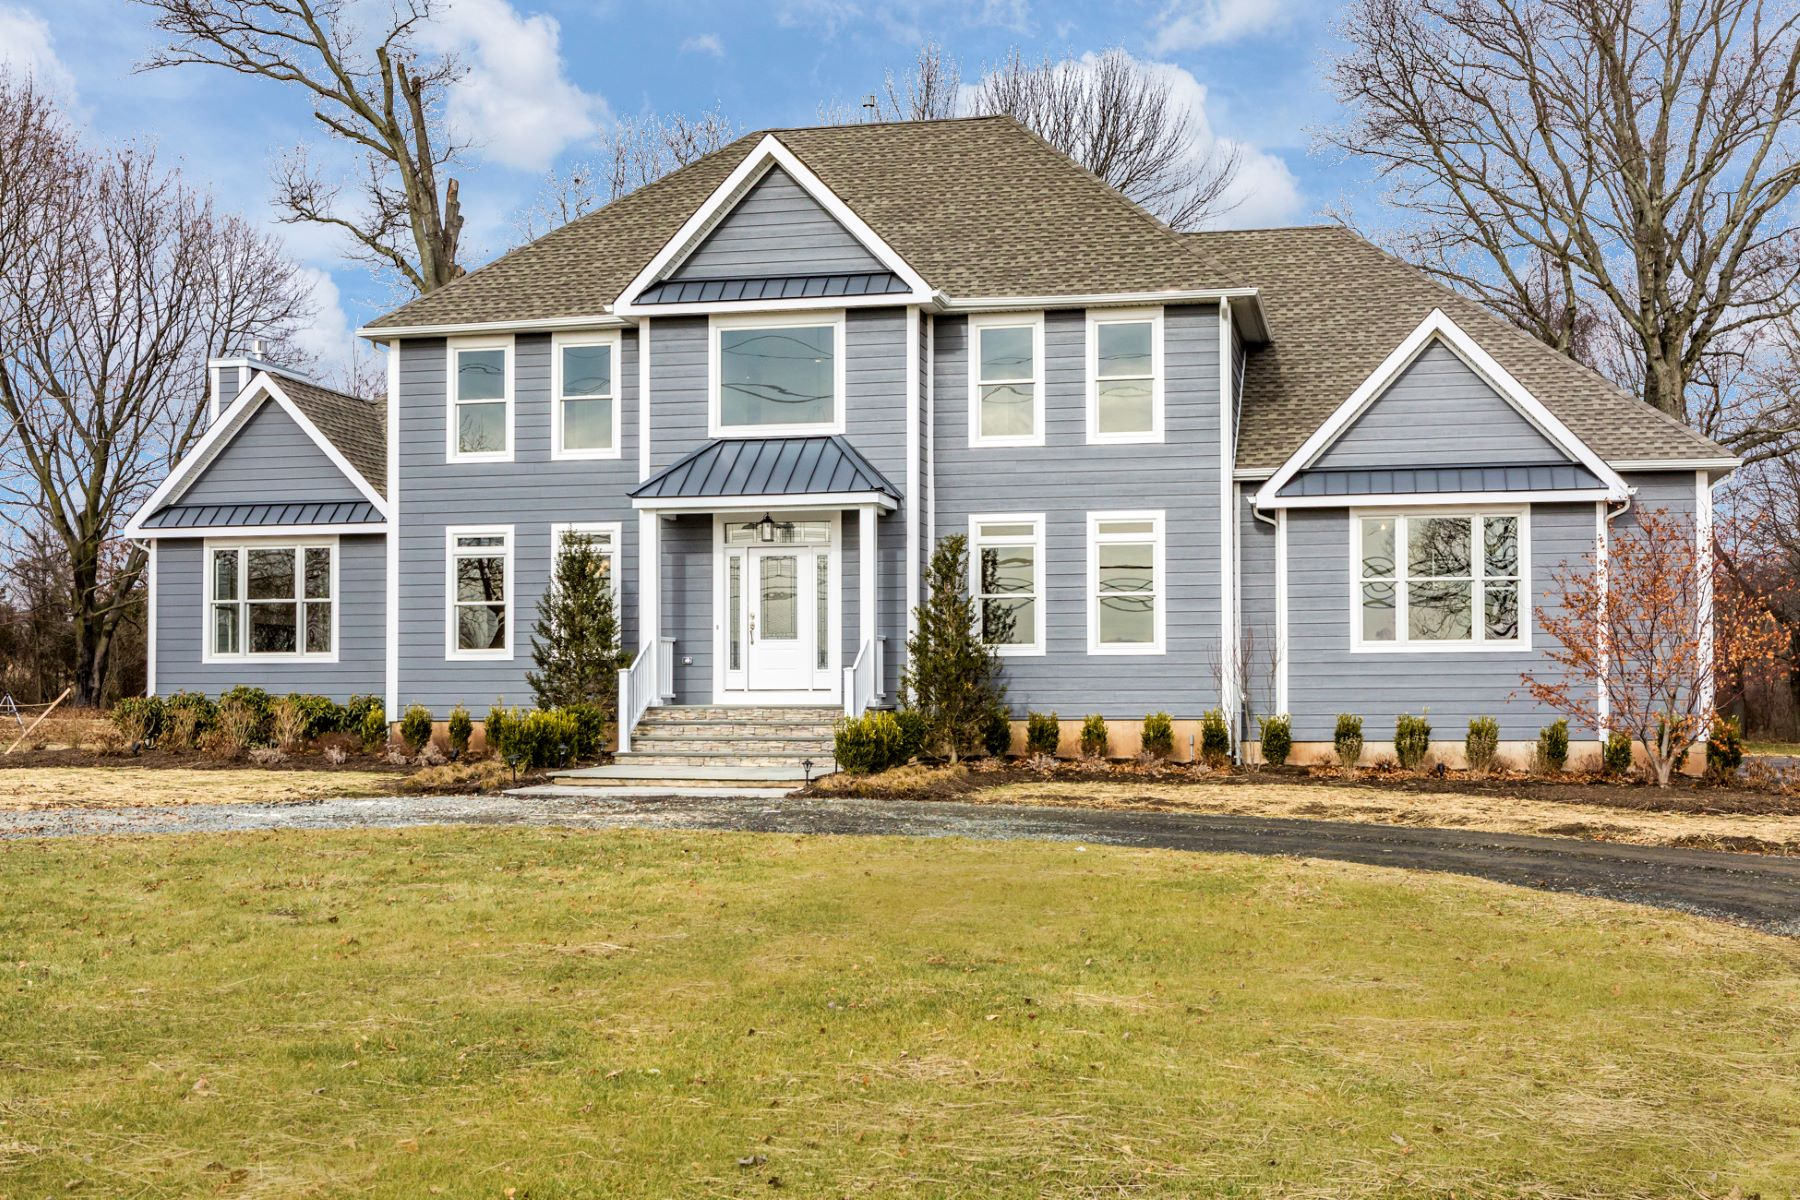 Single Family Home for Sale at Elegant Addition to a Stretch of Fine Properties 9 Elm Ridge Road, Pennington, New Jersey 08534 United StatesMunicipality: Hopewell Township